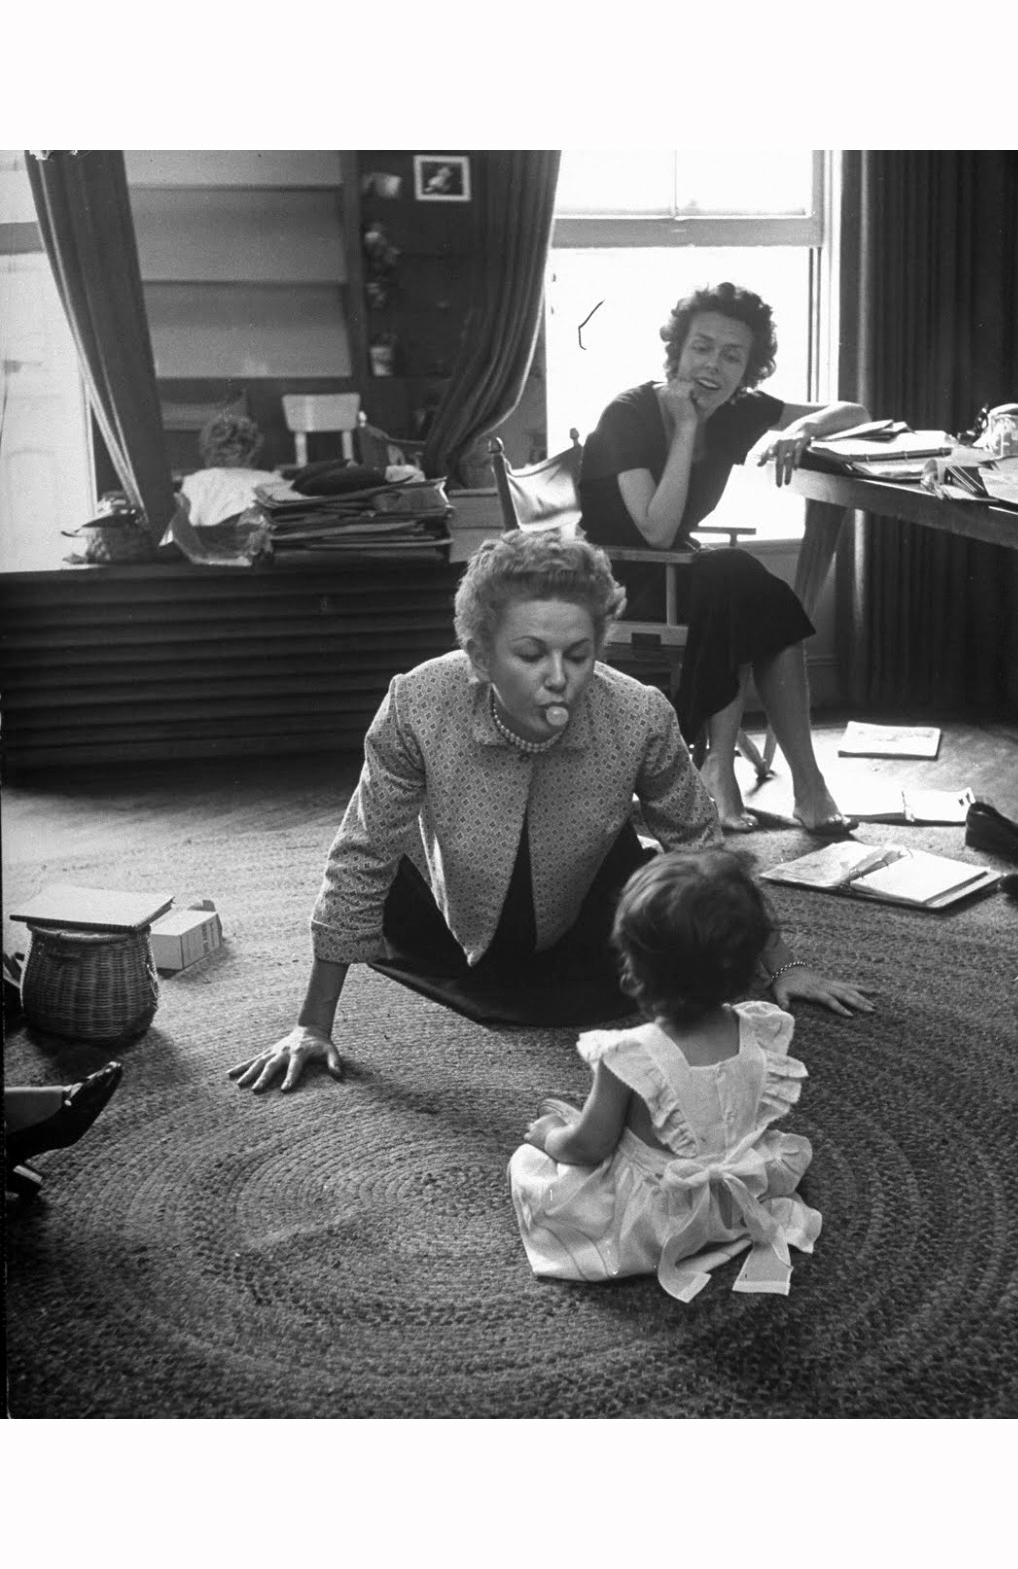 Eileen ford conducting her job of running the